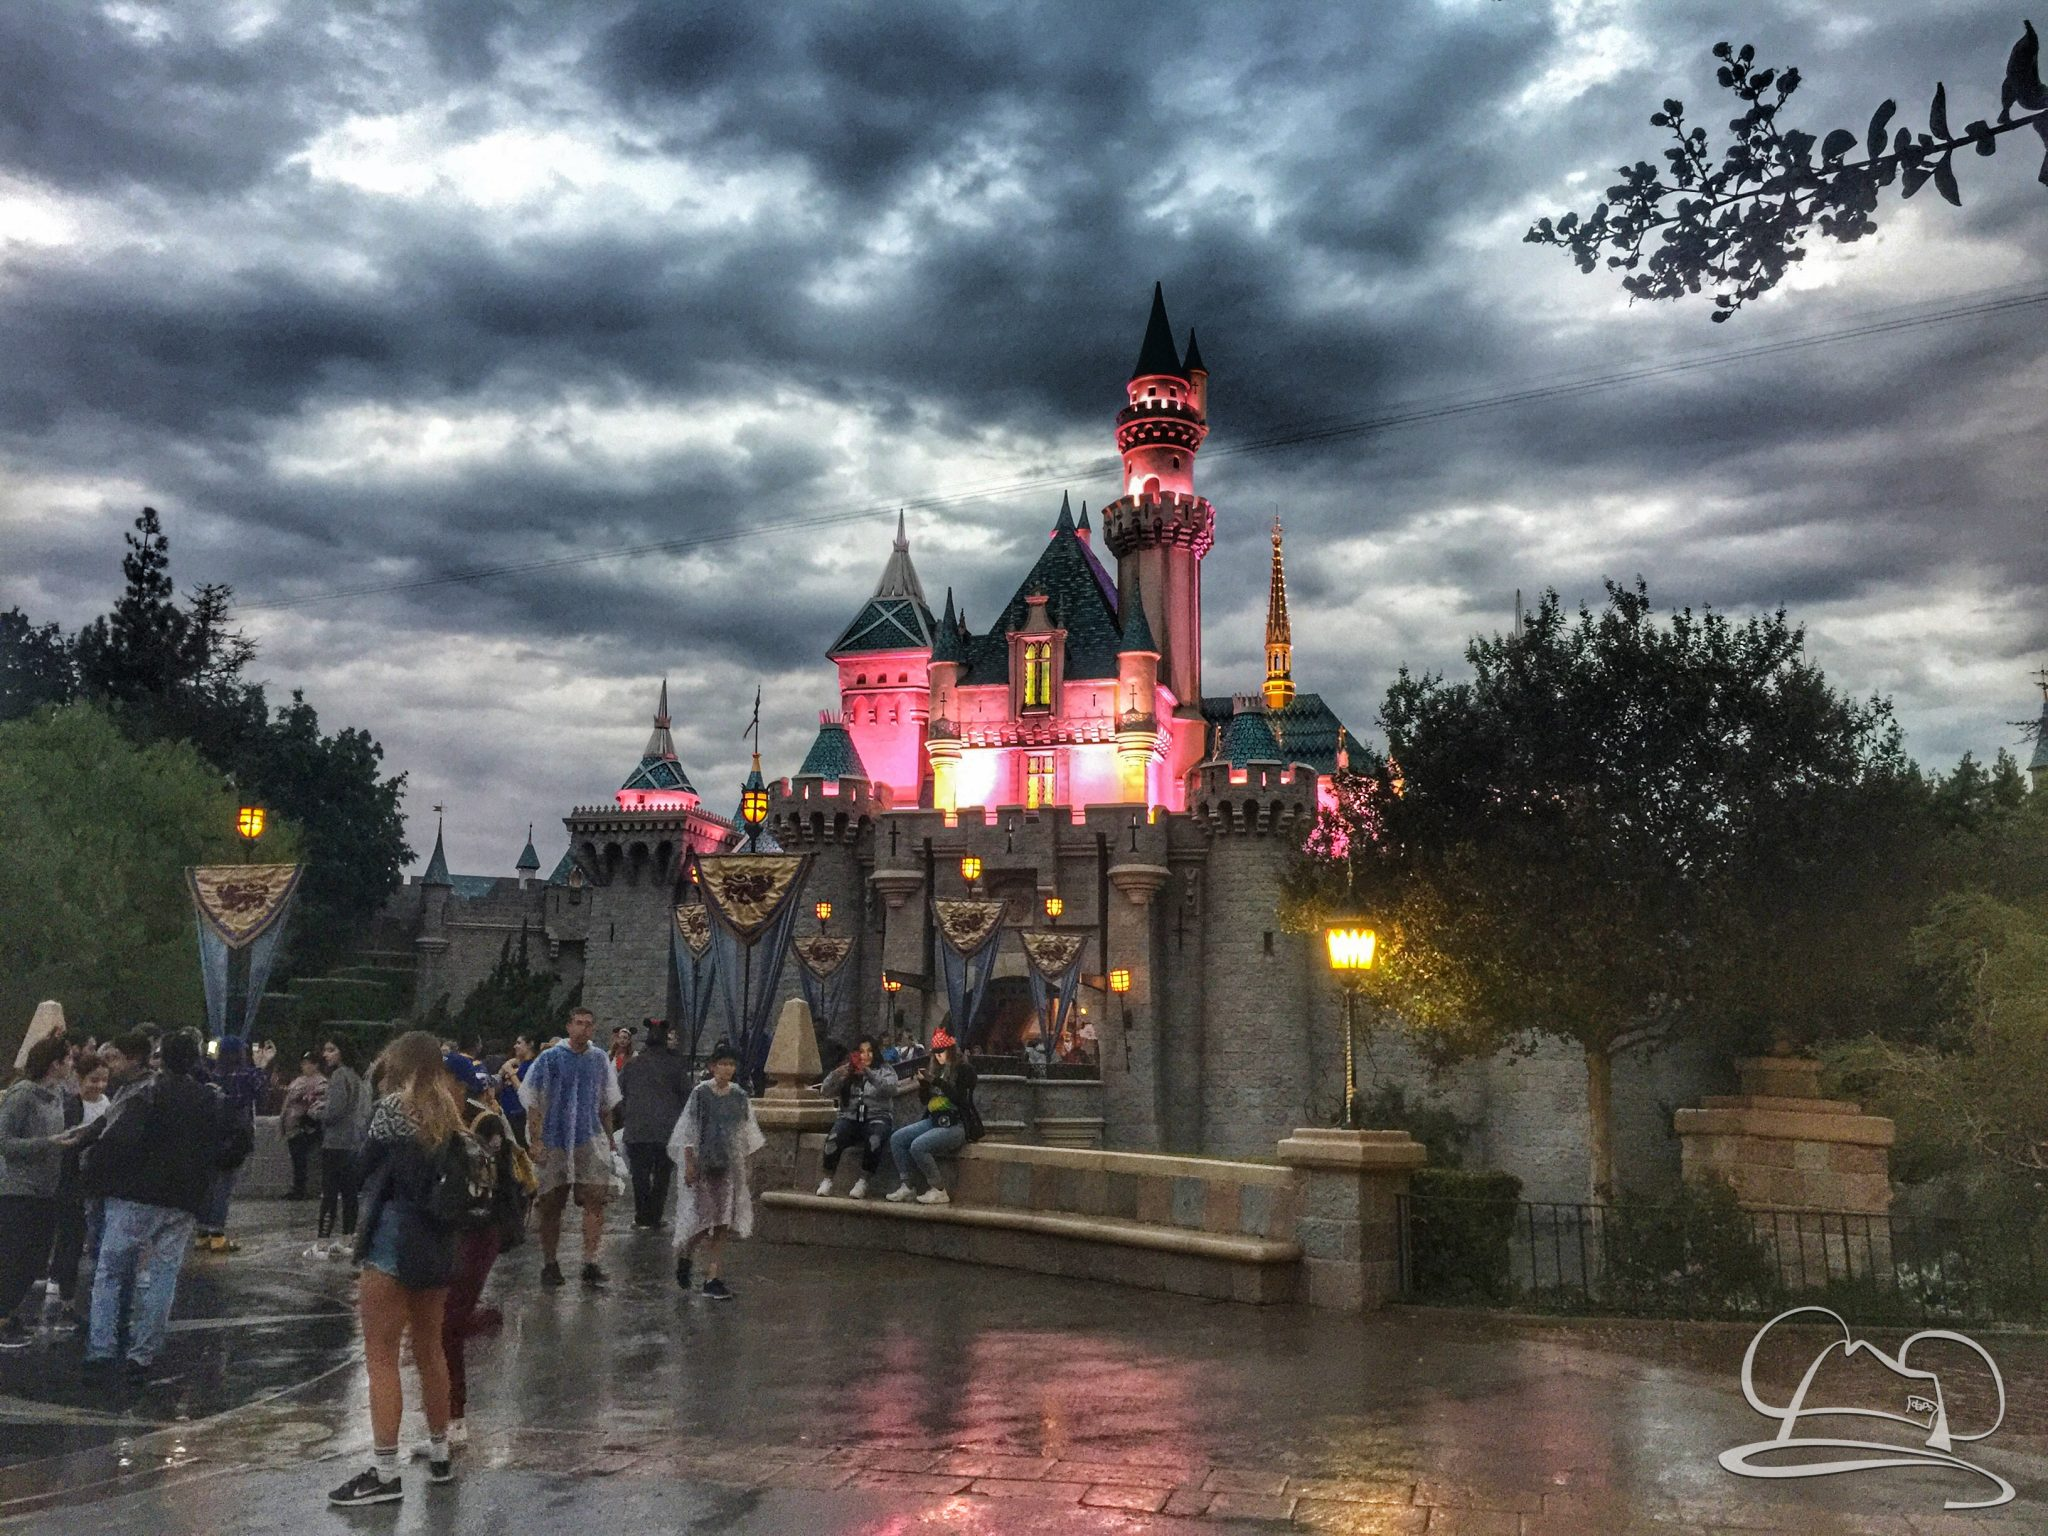 Sleeping Beauty Castle on a Rainy Day at Disneyland!